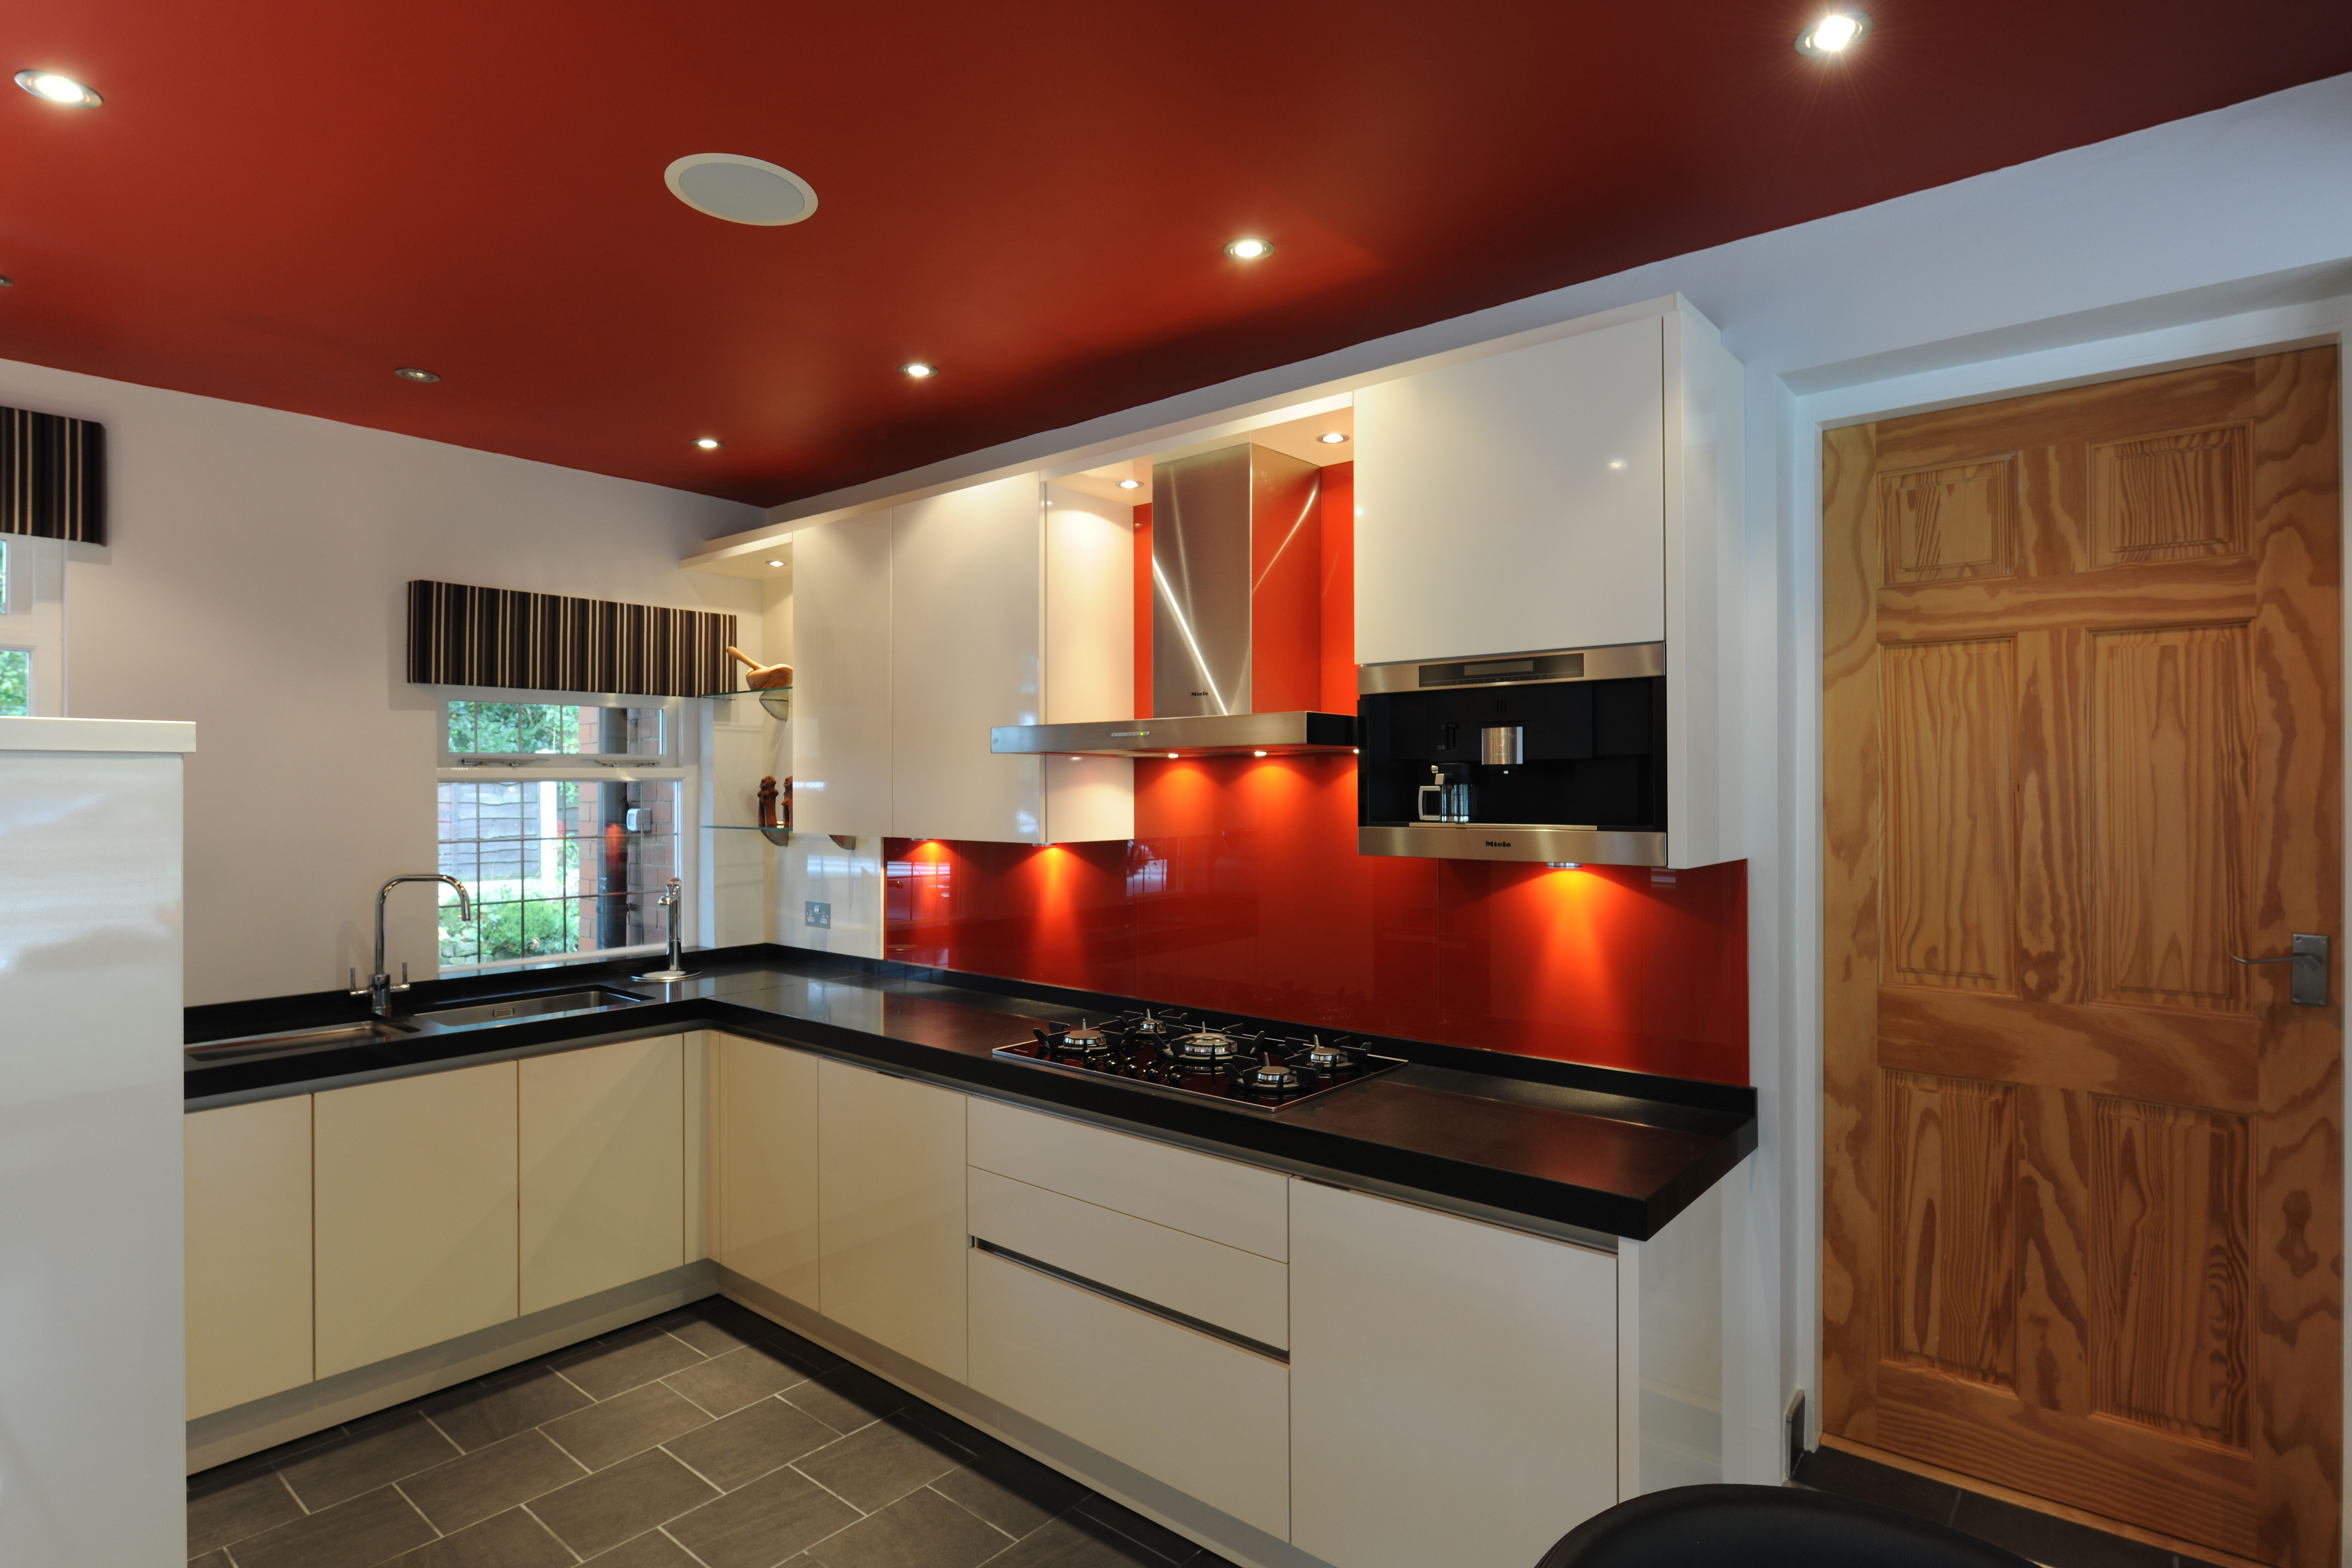 Choosing an vibrant accent colour adds a contemporary twist to a